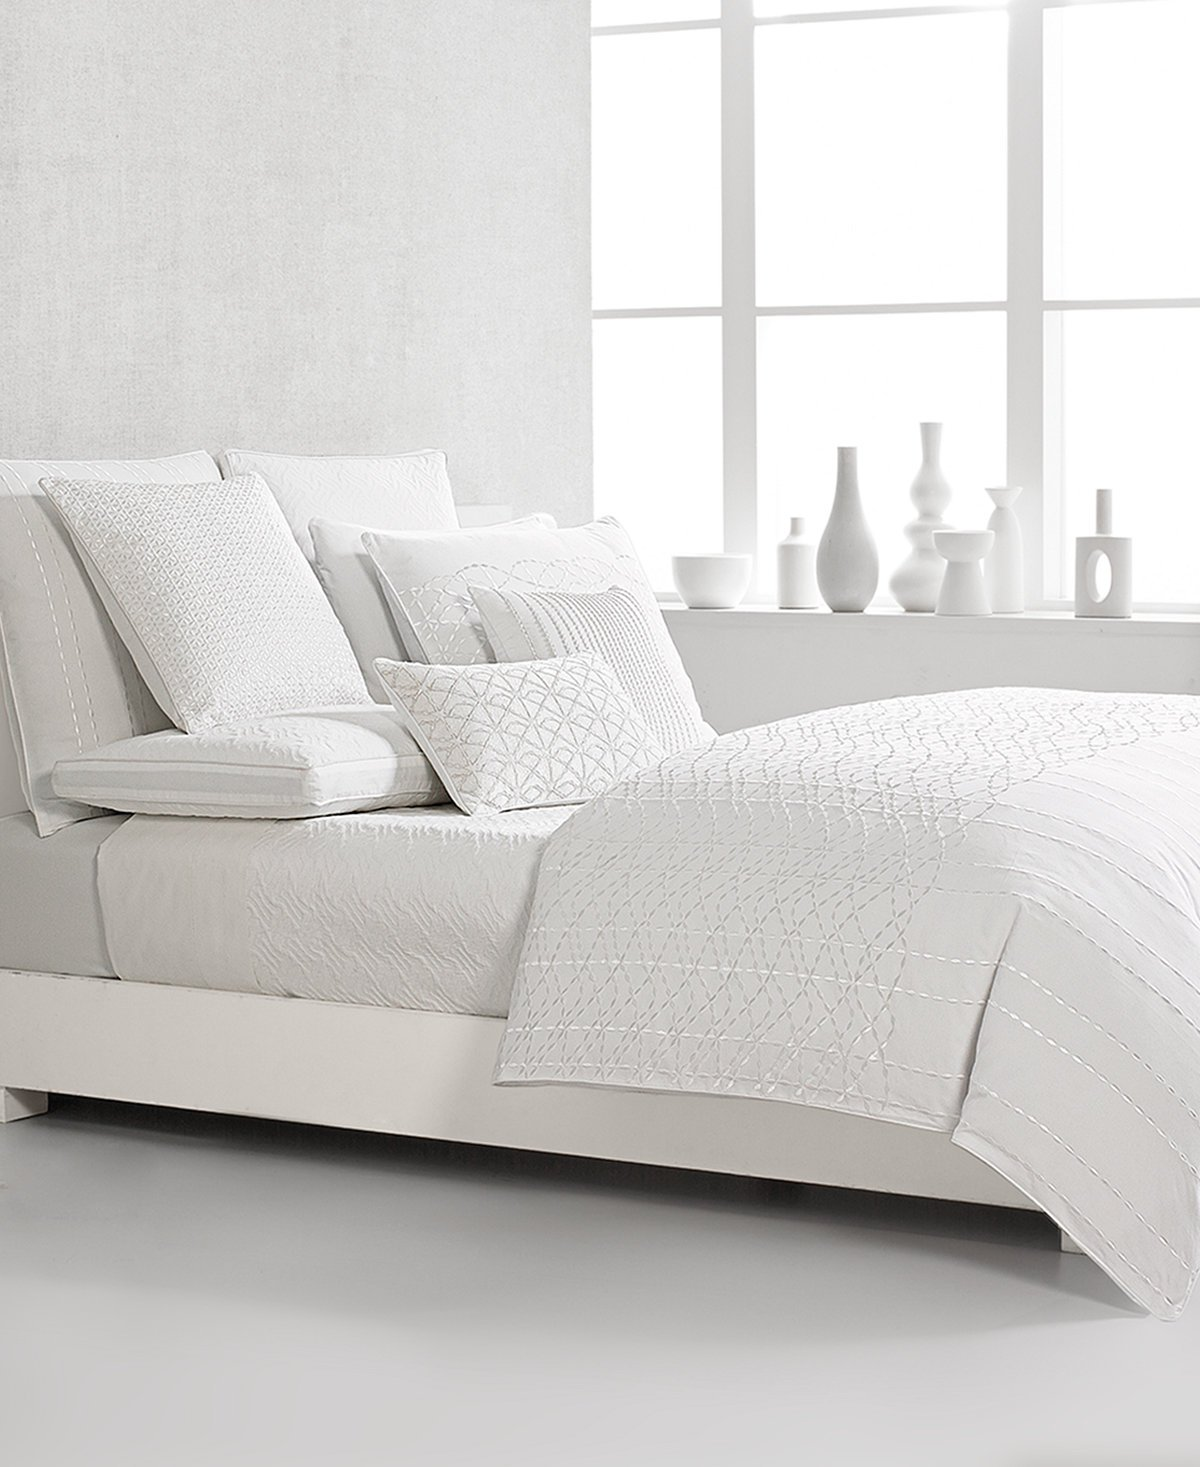 Hotel Collection Sonnet Full Queen Quilted Coverlet Bedding, White